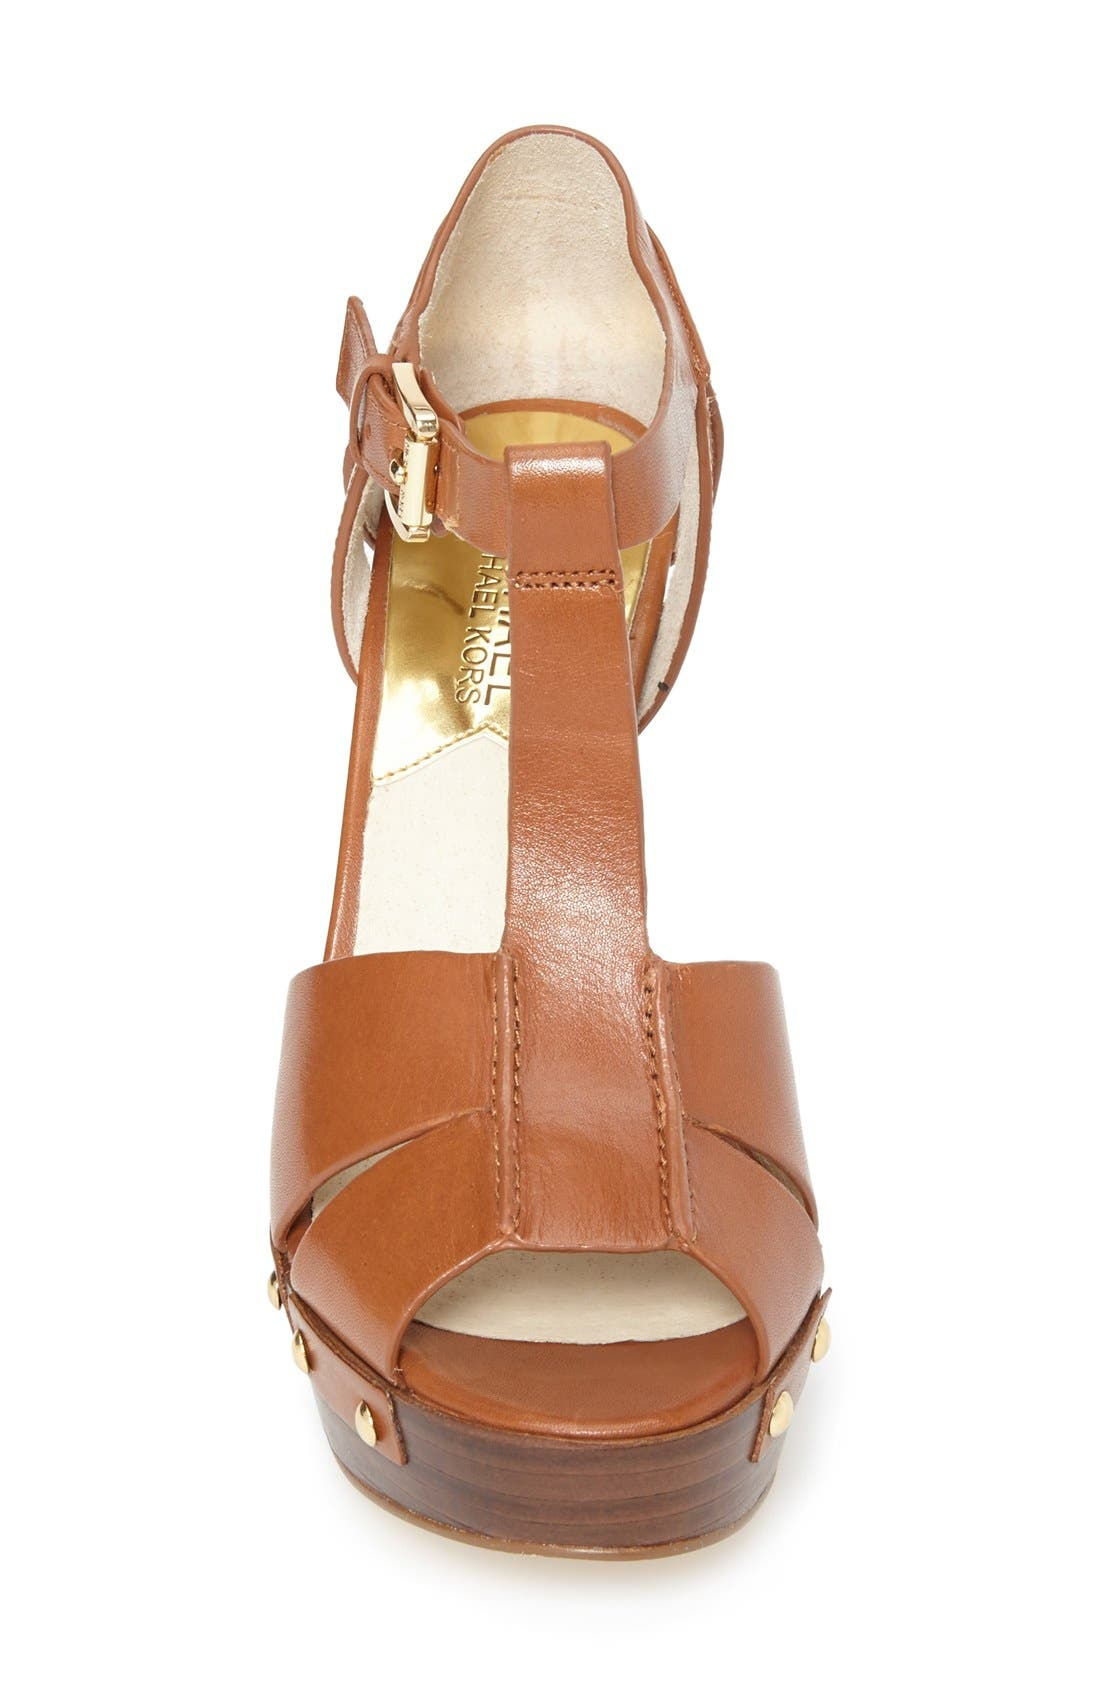 Alternate Image 3  - MICHAEL Michael Kors 'Beatrice' Leather T-Strap Platform Sandal (Women)